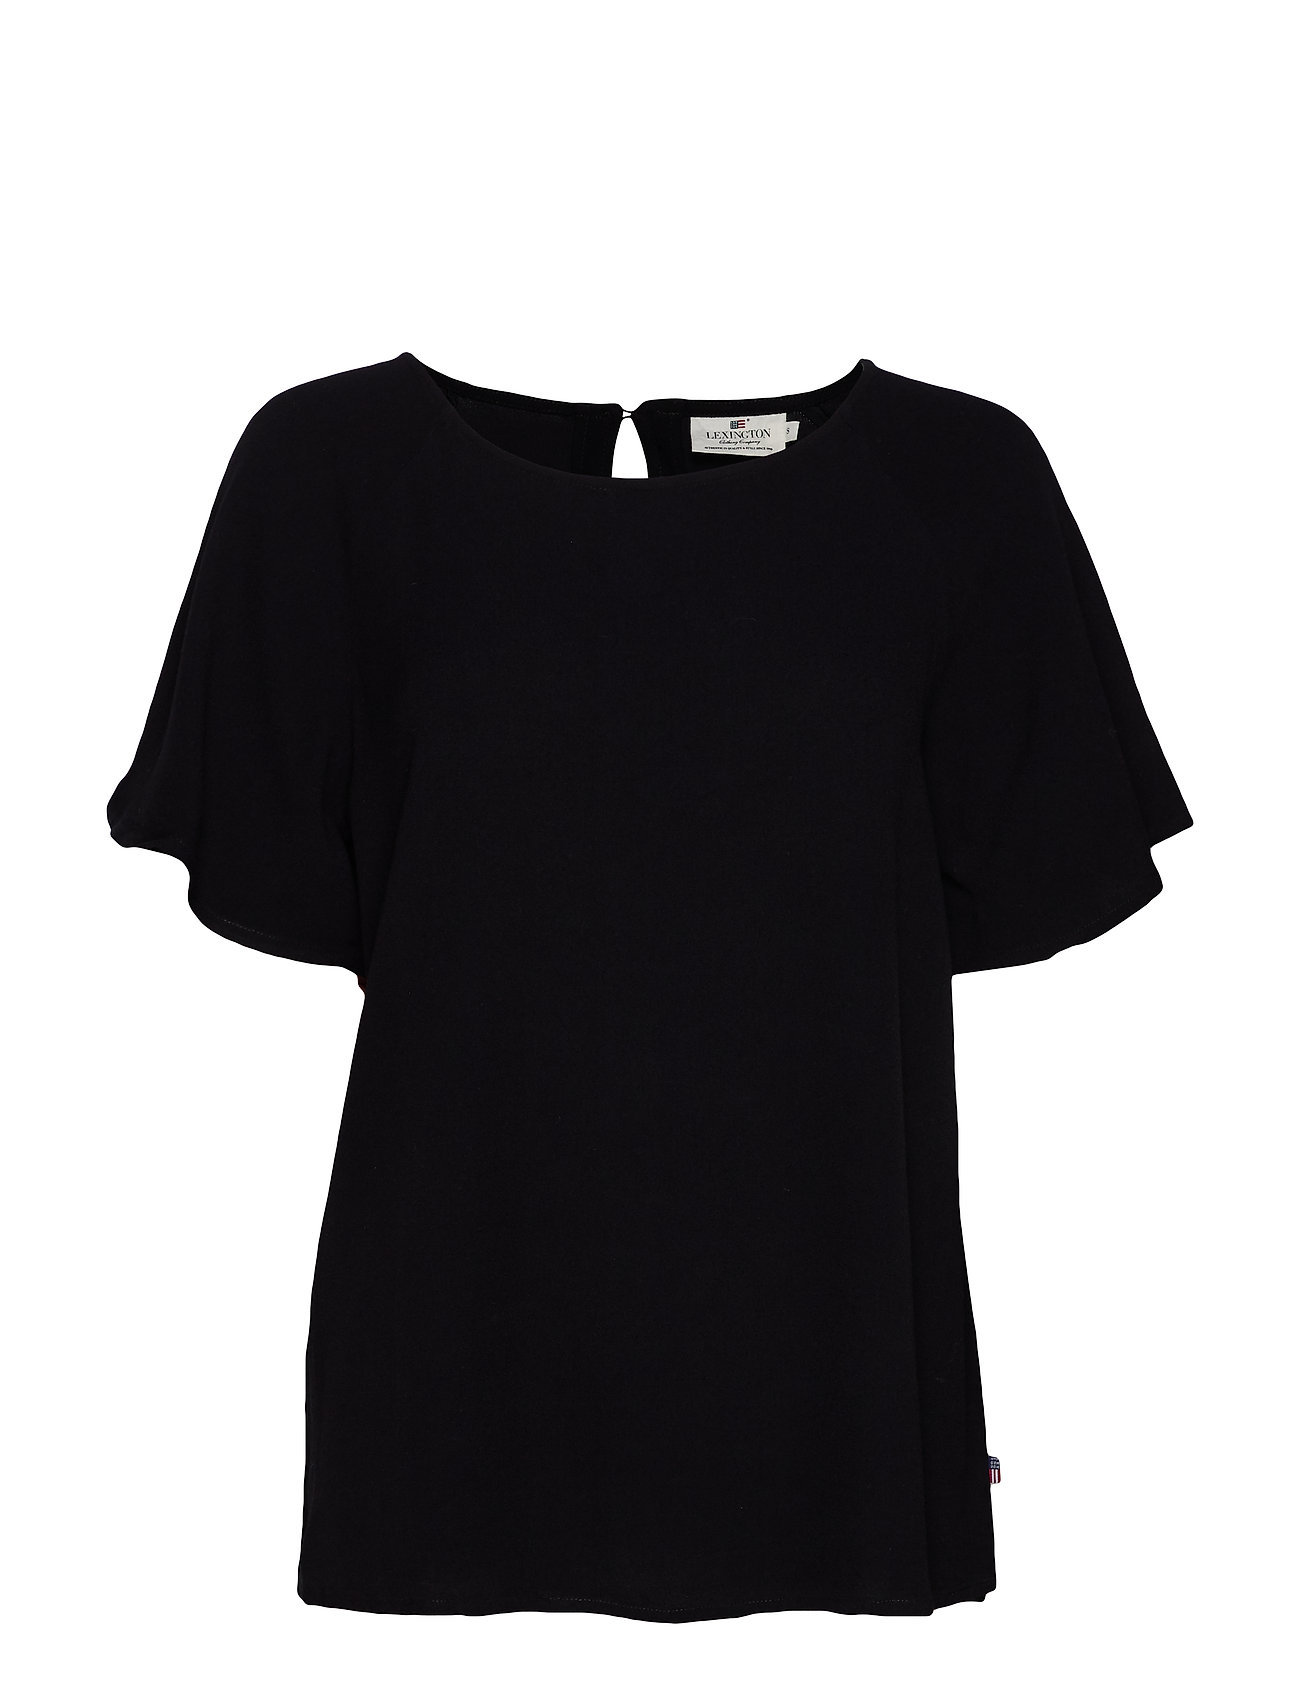 Lexington Clothing Ellis Top - BLACK